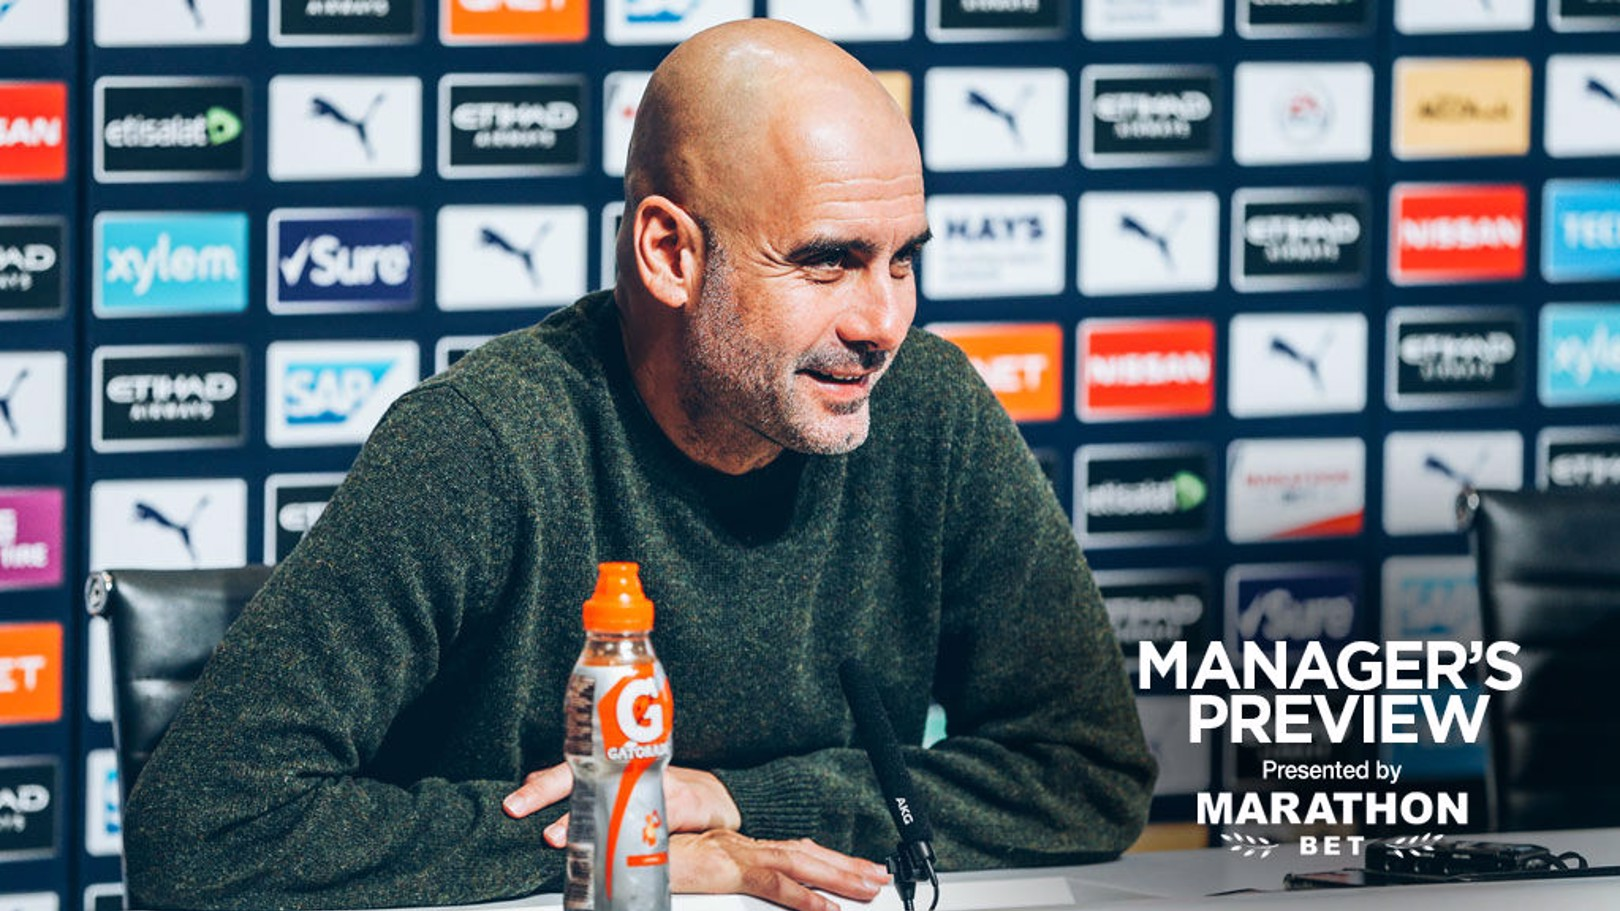 PREVIEW: Pep Guardiola speaks to journalists ahead of City's game against Arsenal.